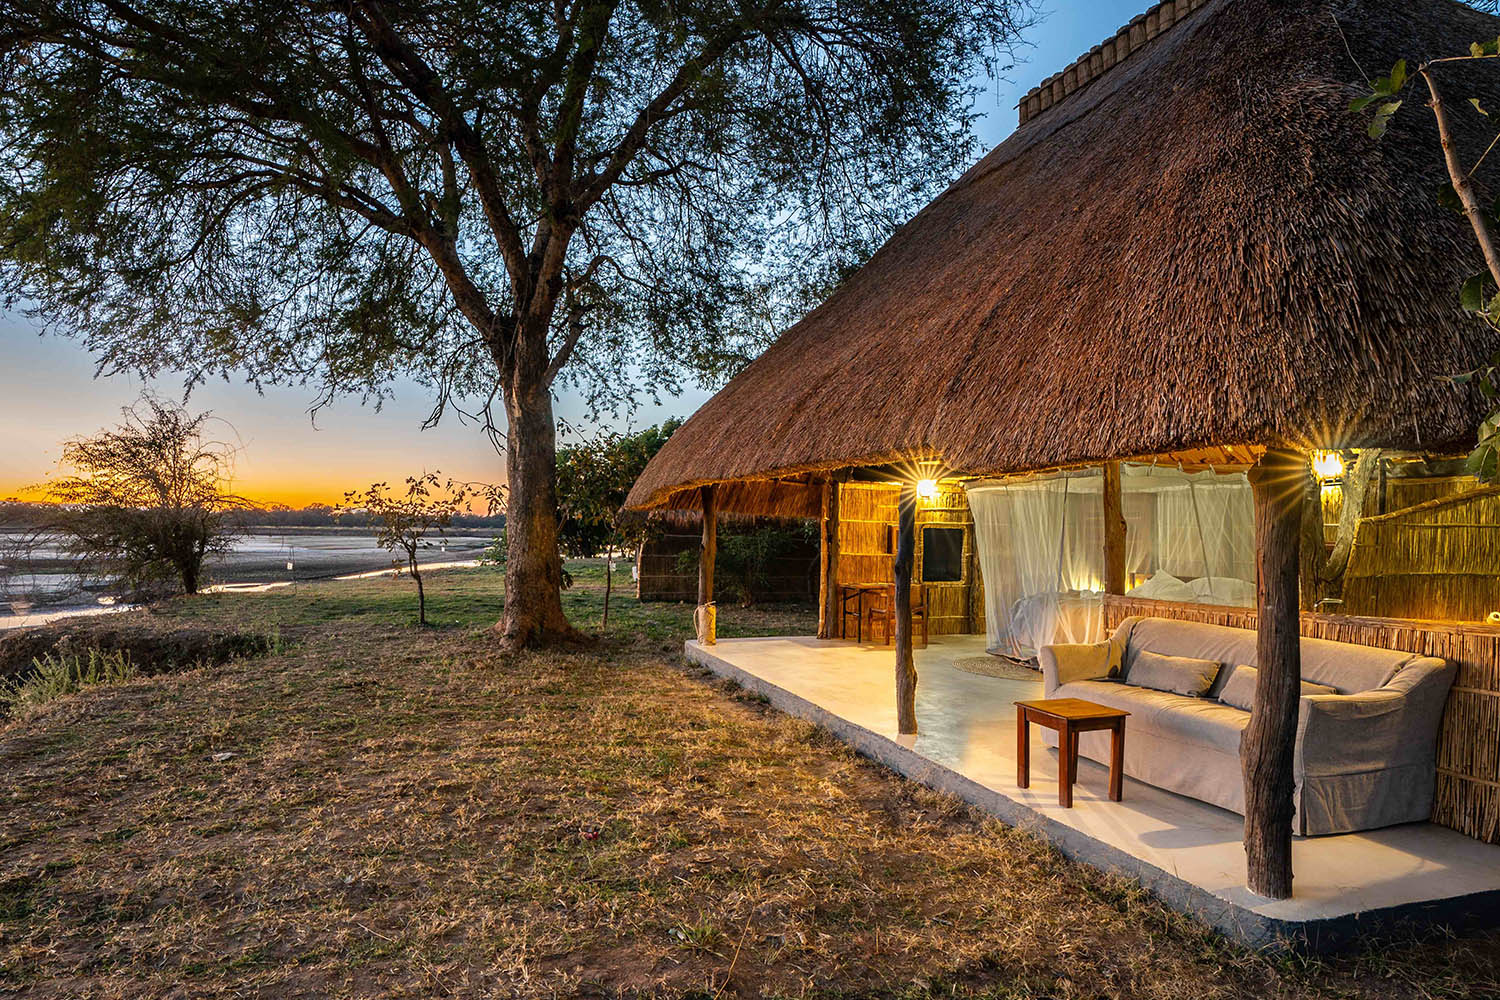 kakuli-beautiful-camp-lodge-zambia-in-style-tours-safari-packages-lodges-south-luangwa-national-park-suite-exterior